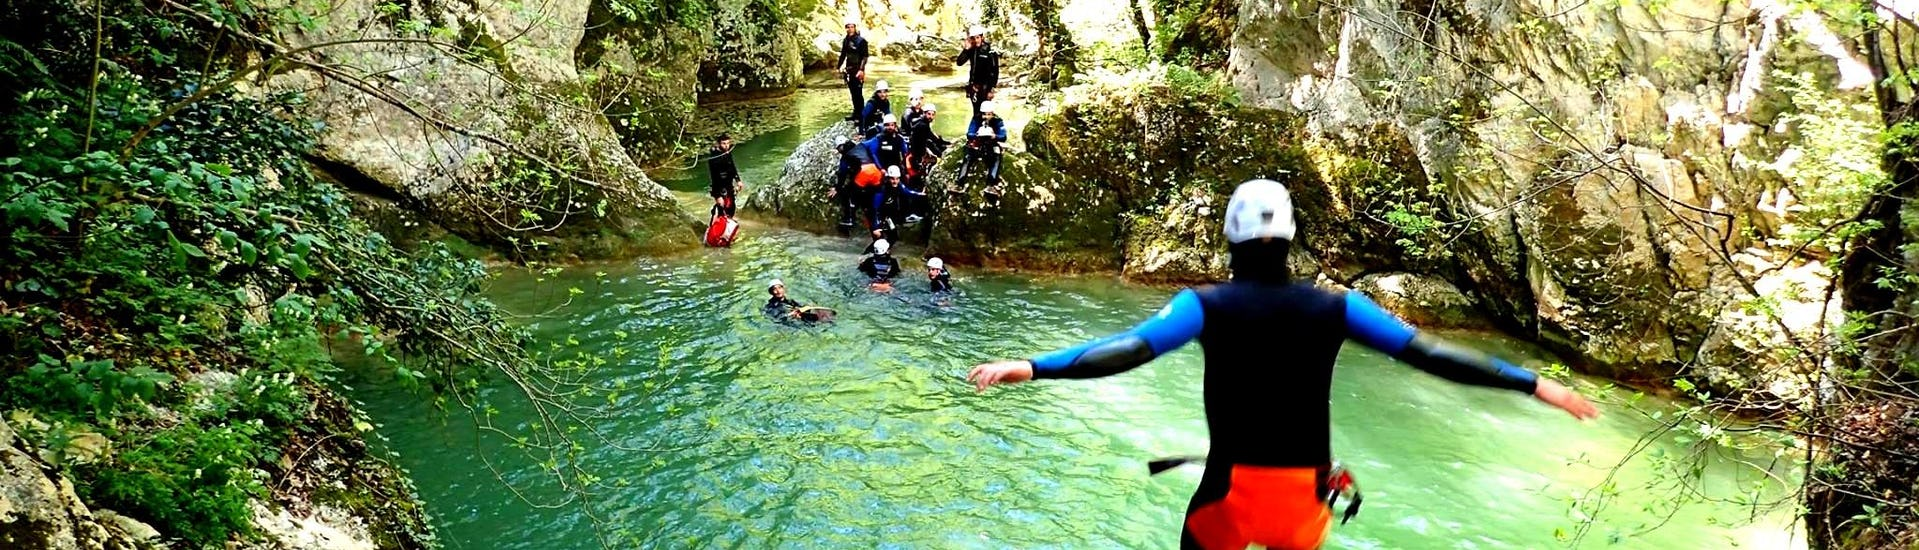 canyoning-in-the-aniene-classic-vivere-laniene-hero